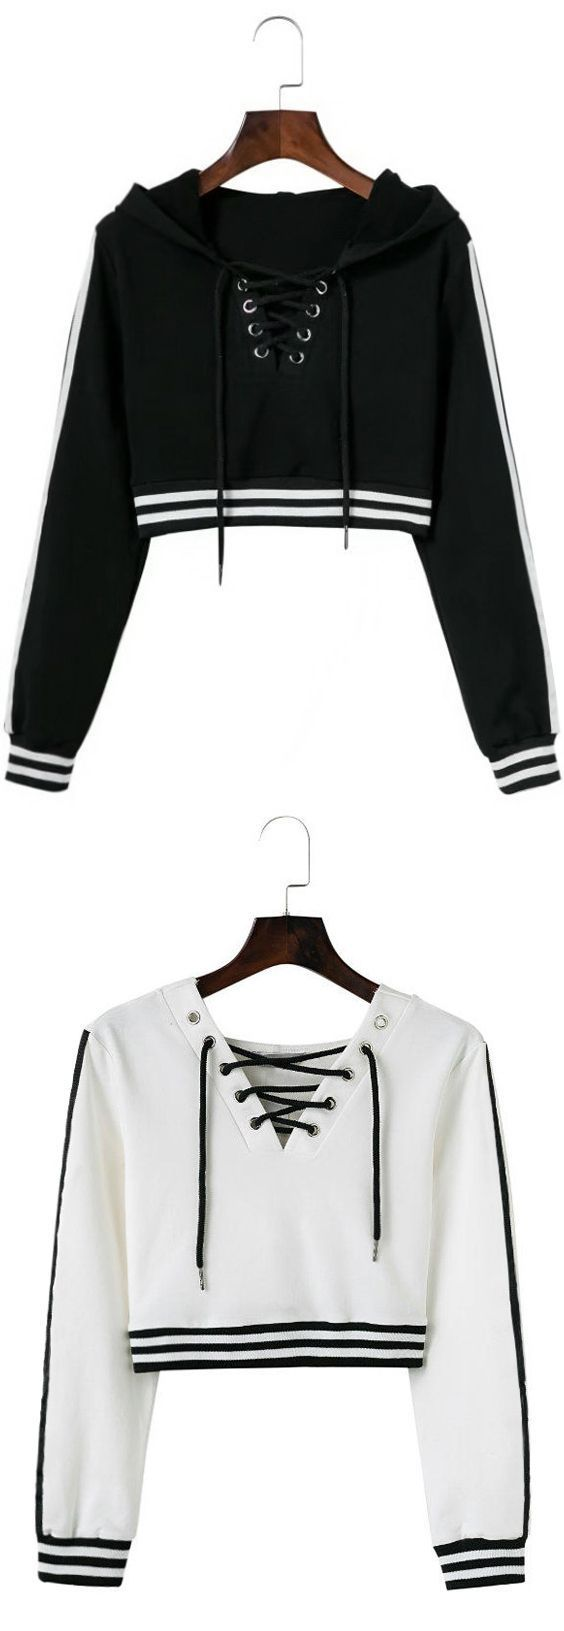 Up to 80% OFF!  Lace Up Striped Cropped Hoodie. Zaful,zaful.com,zaful fashion,tops,womens tops,outerwear,sweatshirts,hoodies,hoodies outfit,hoodies fo…